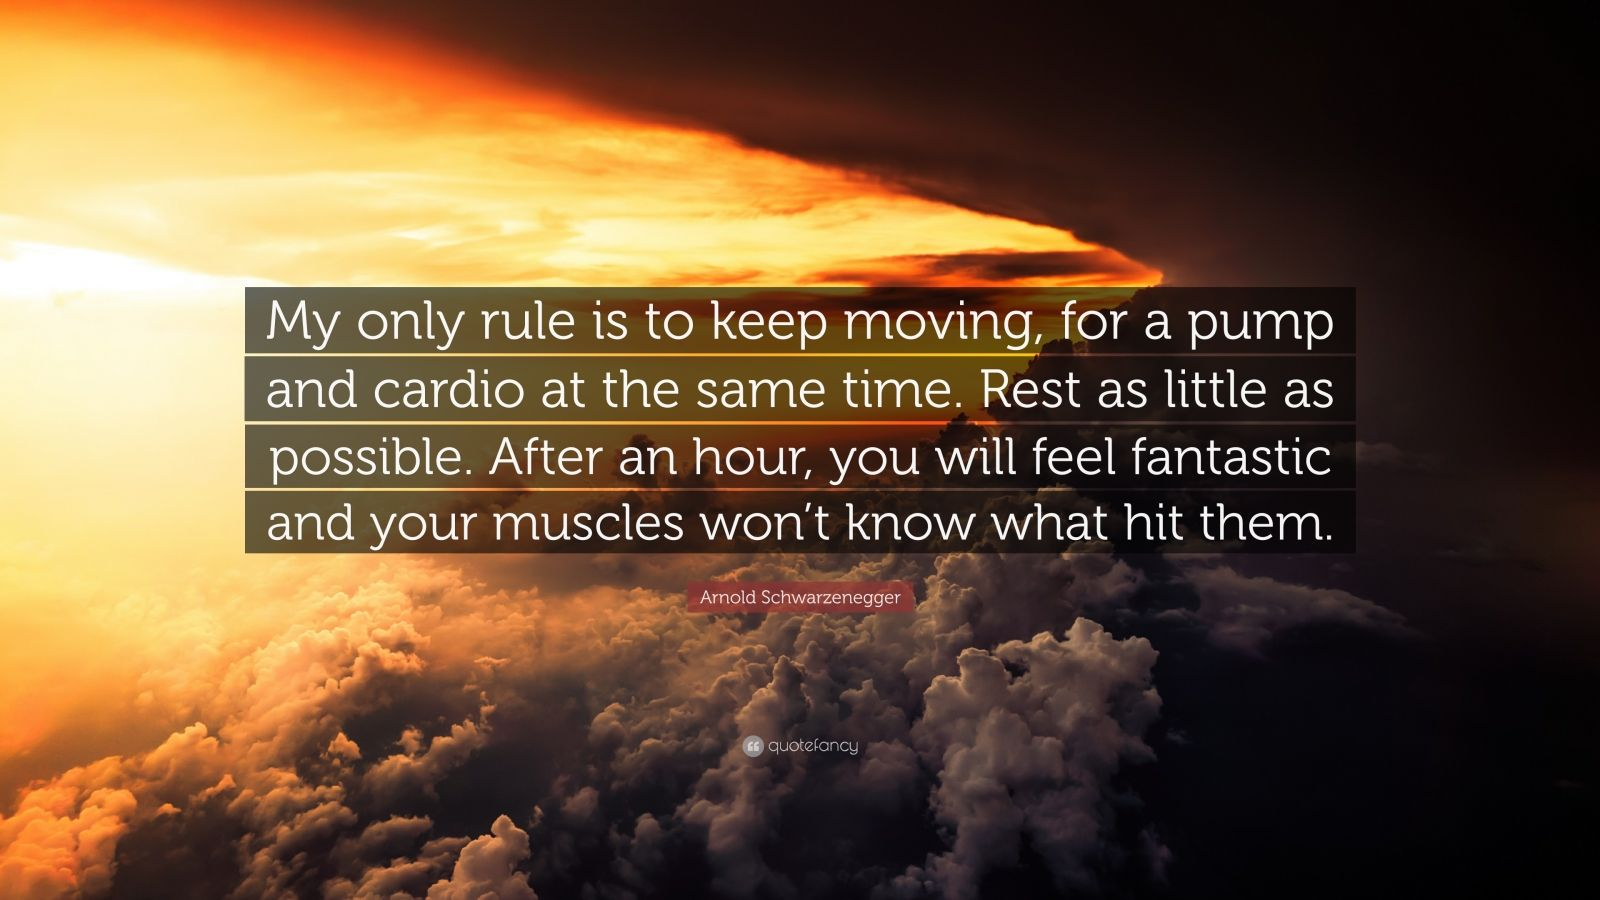 """Arnold Schwarzenegger Quote: """"My only rule is to keep moving, for a pump and cardio at the same time. Rest as little as possible. After an hour, you will feel fantastic and your muscles won't know what hit them."""""""